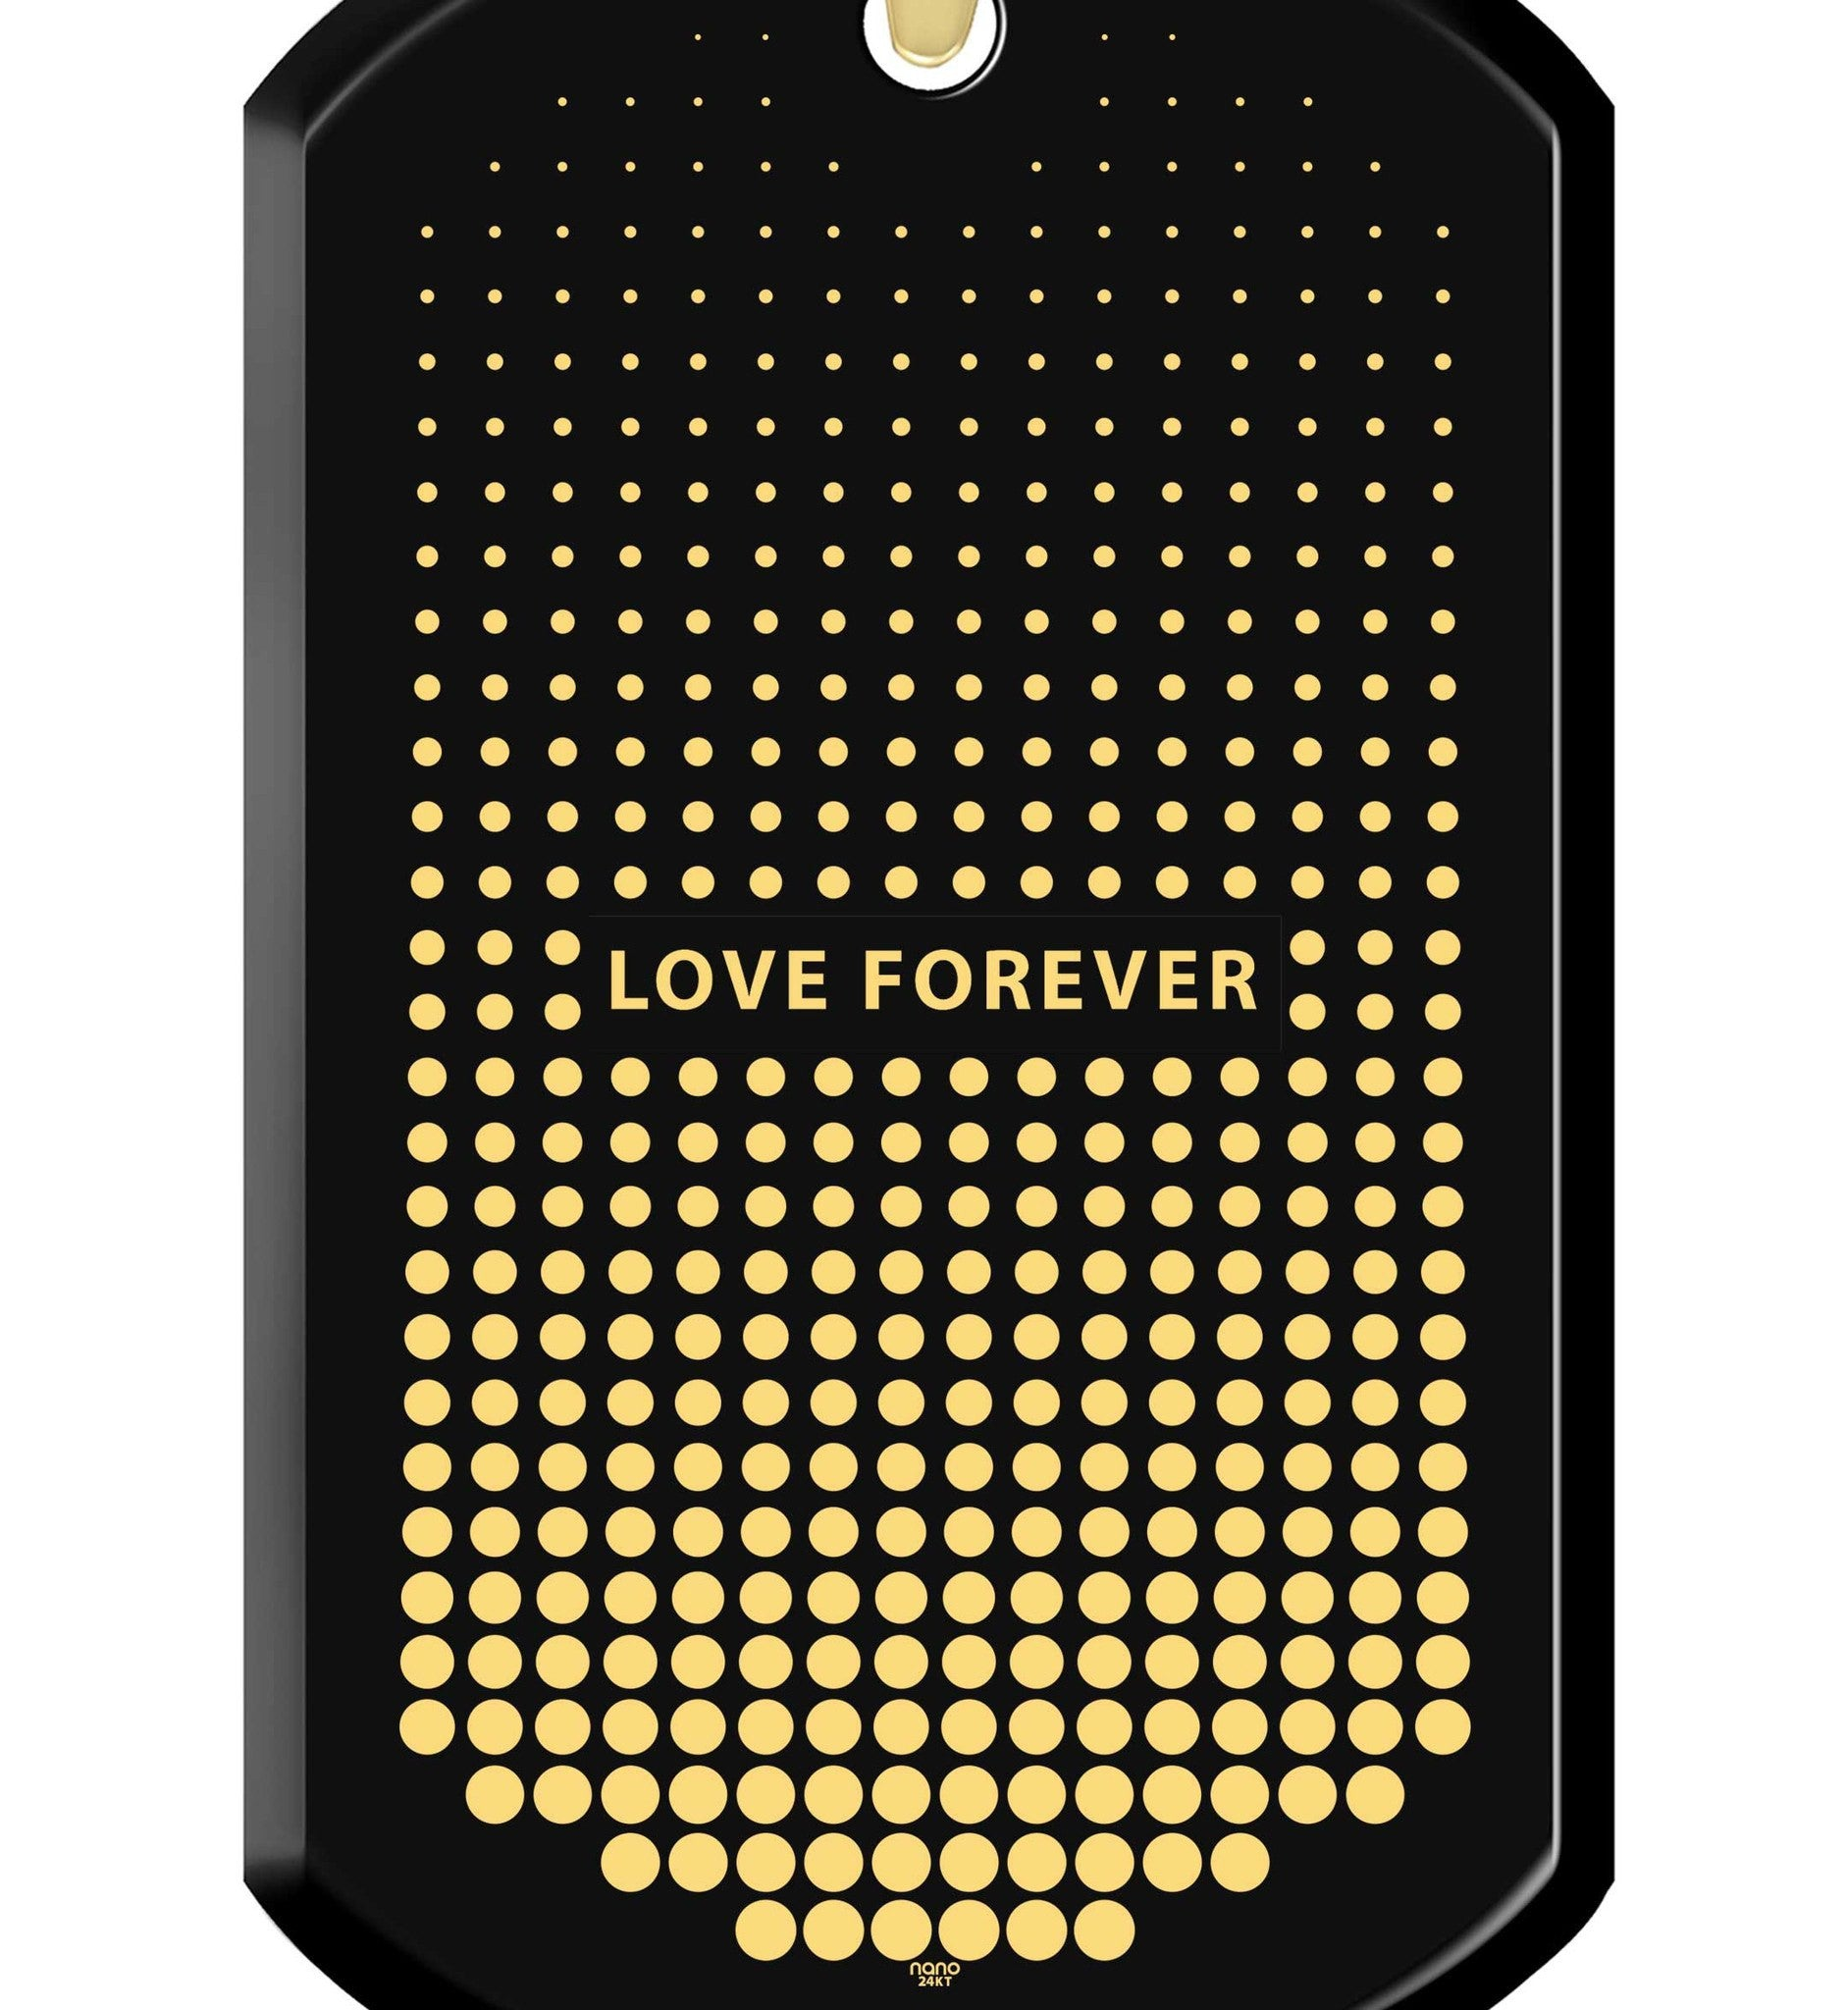 Husband Valentines Gift, Gold Chain with Love Forever Engraved Pendant, What to Get Your Boyfriend for His BirthdayWhat to Get Boyfriend for Birthday, Love Forever Fine Gold Necklace Charms, Mens Christmas Gift Ideas, by Nano Jewelry